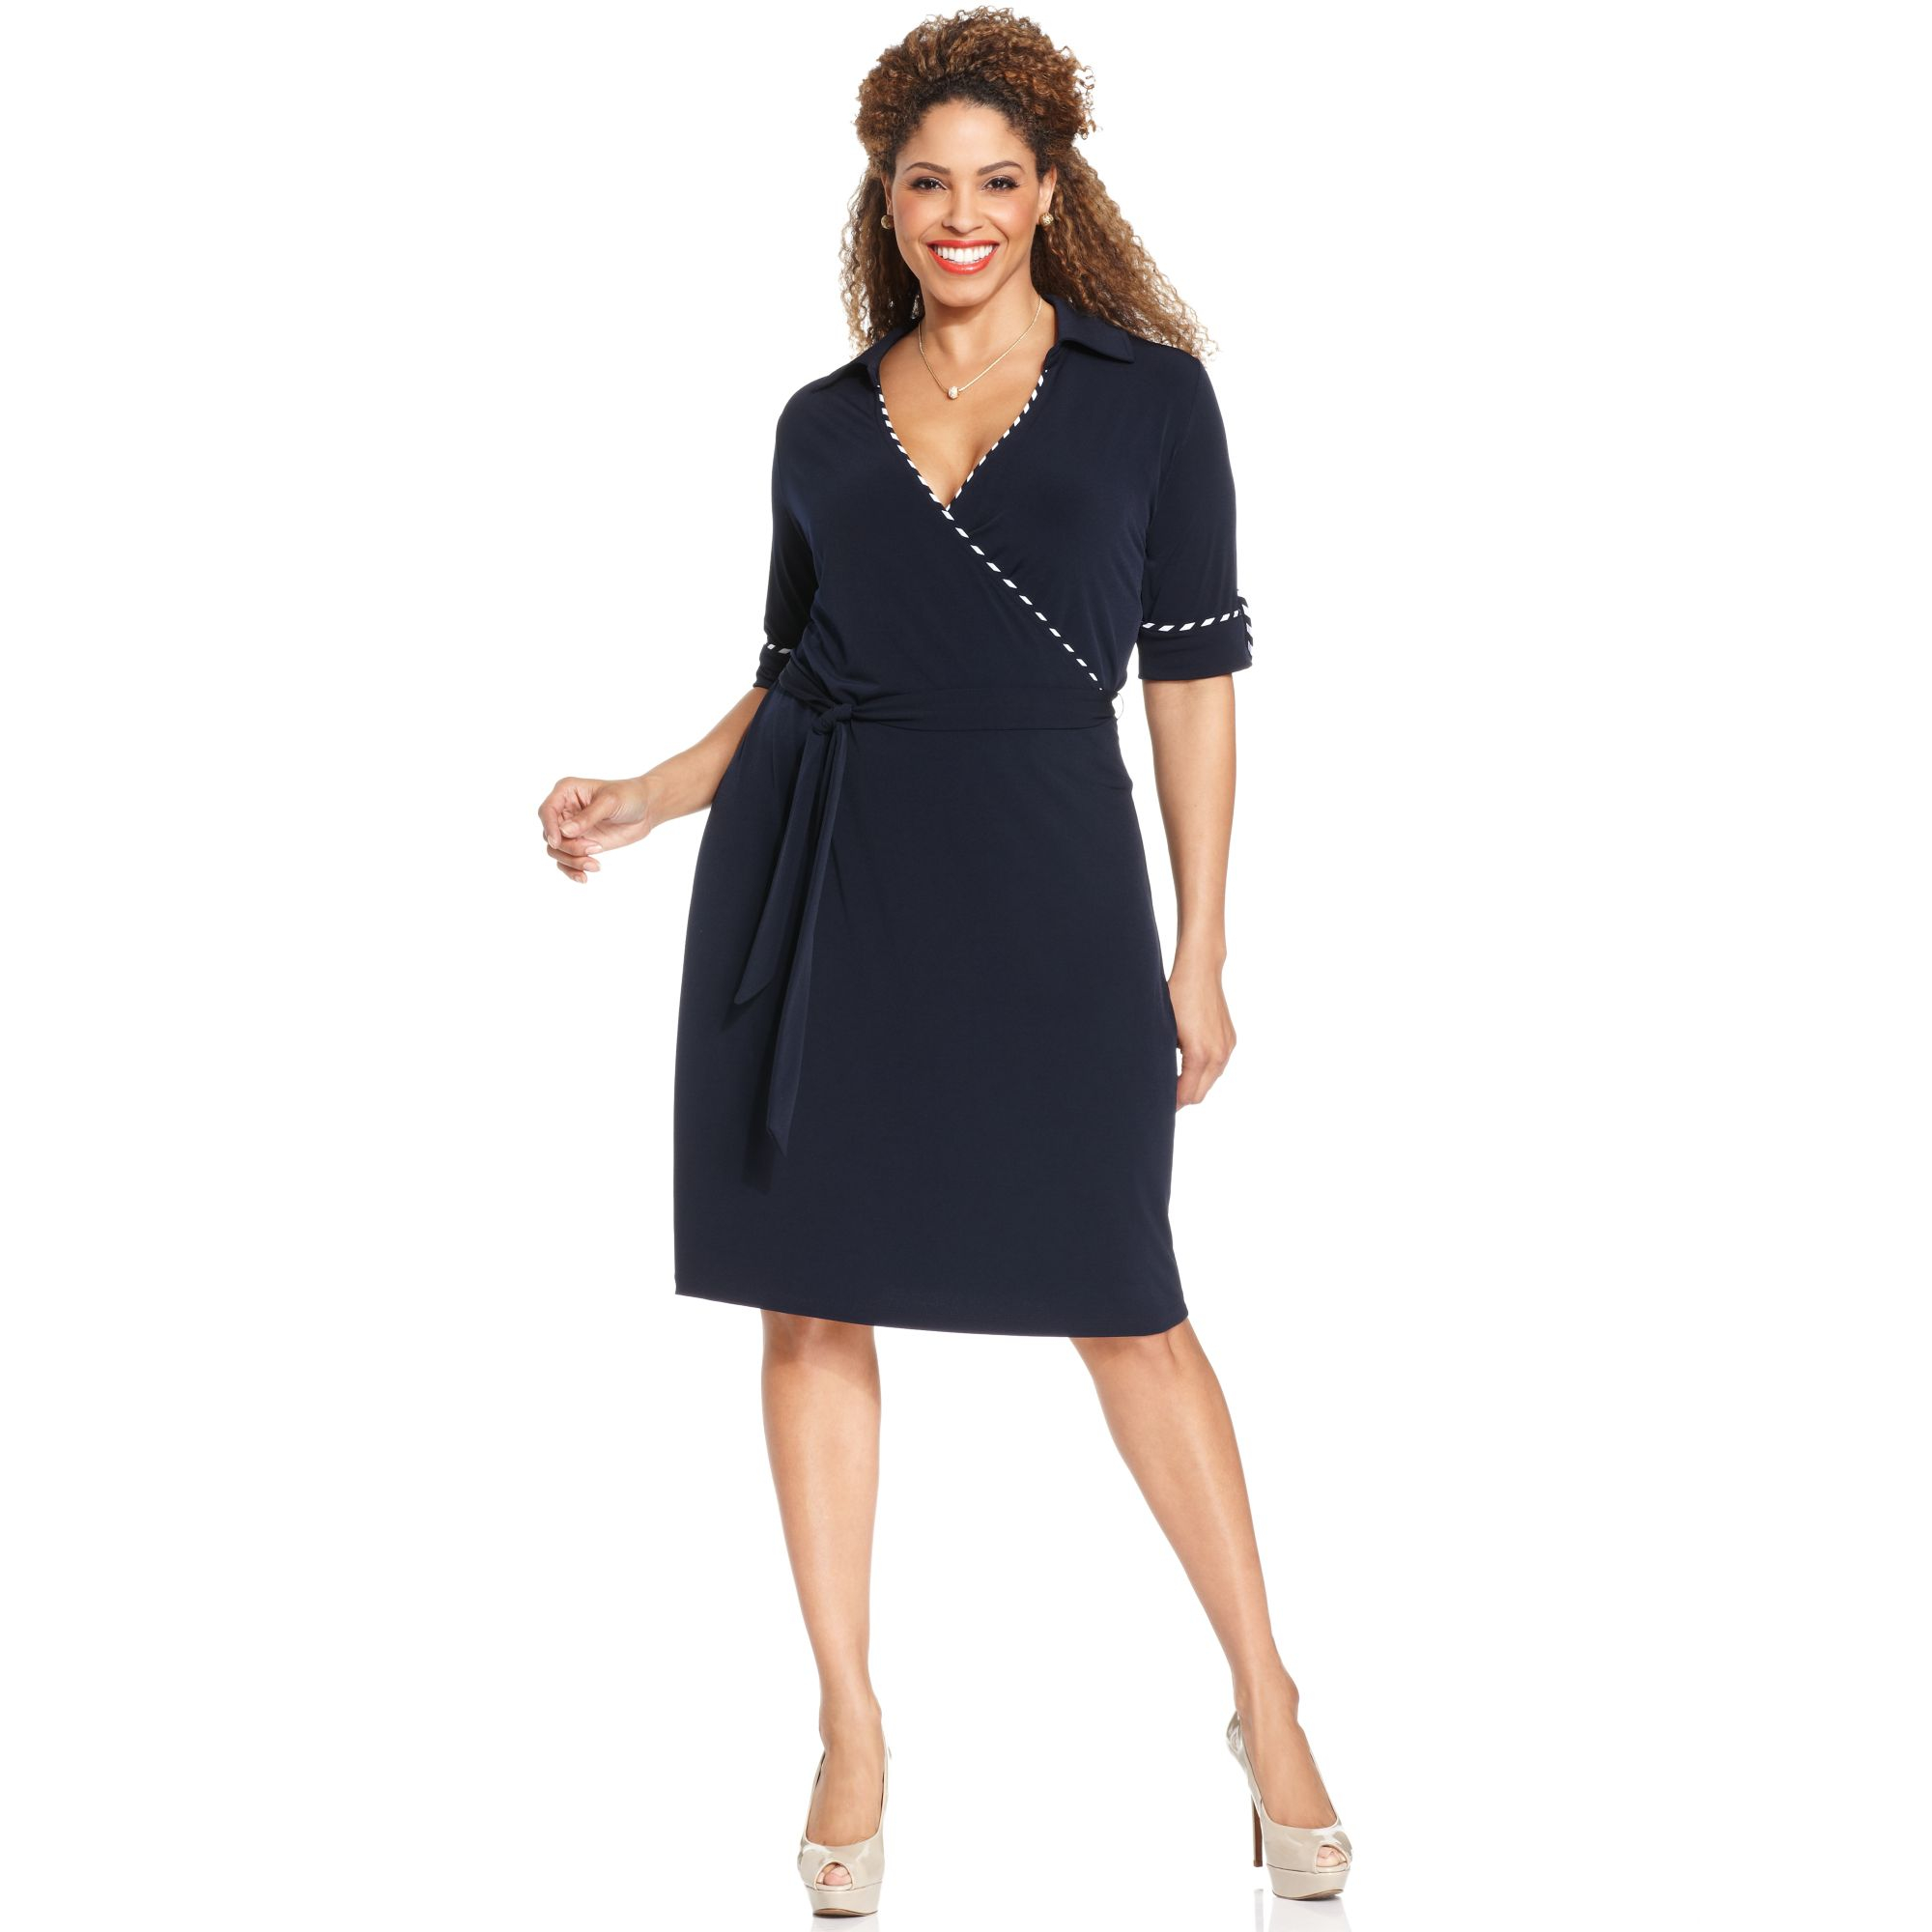 Plus Size Formal Dresses New York City 82